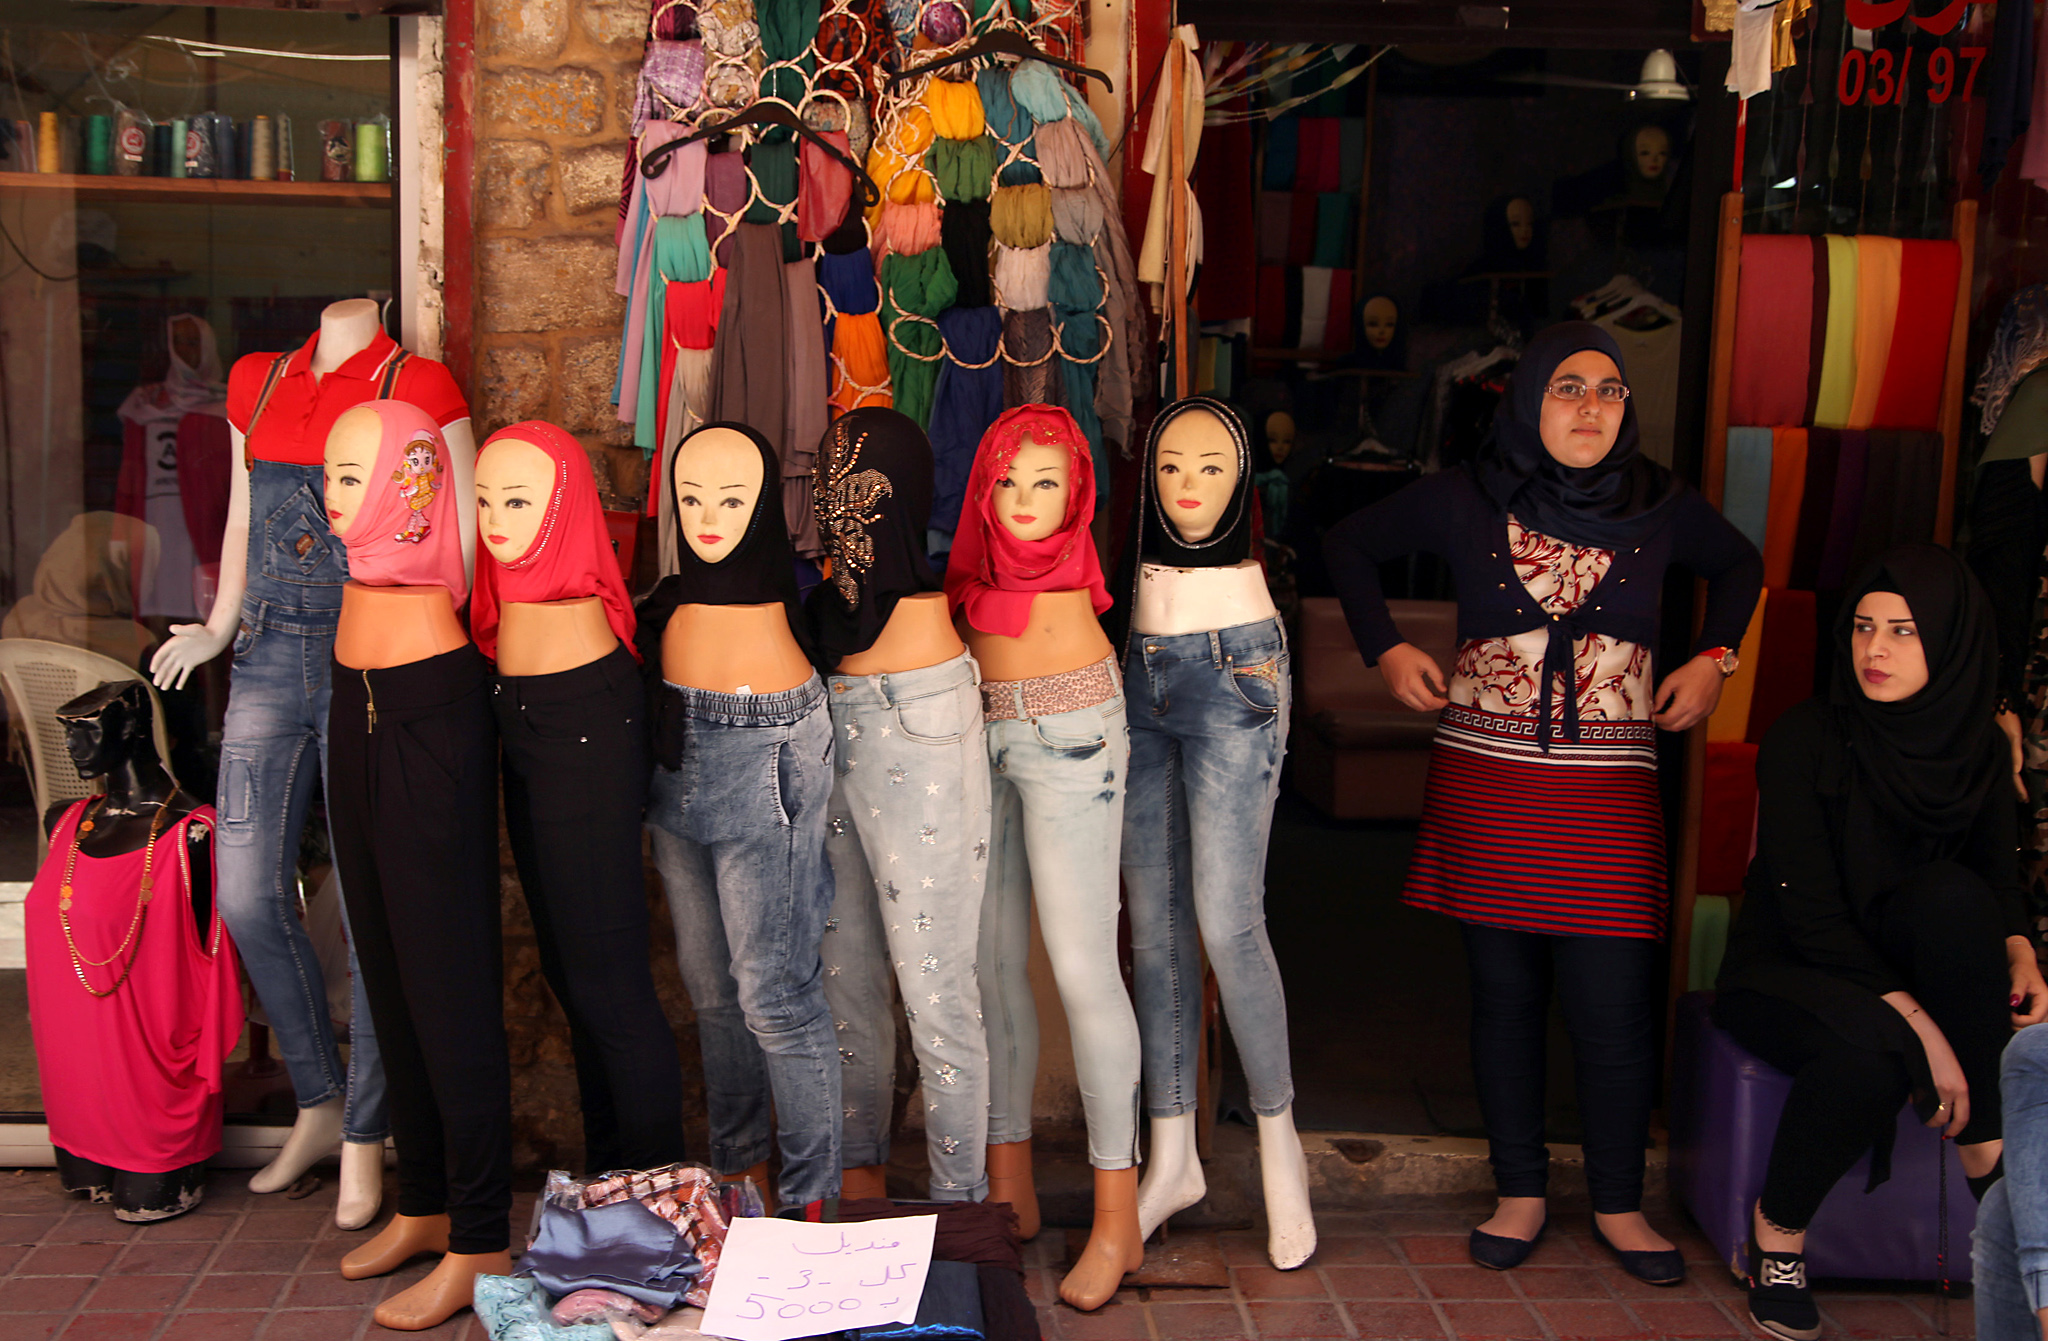 Women stand outside their shop near veils displayed on mannequins for sale during the holy month of Ramadan in Tyre old city, southern Lebanon June 12, 2016. Picture taken June 12, 2016. REUTERS/Ali Hashisho